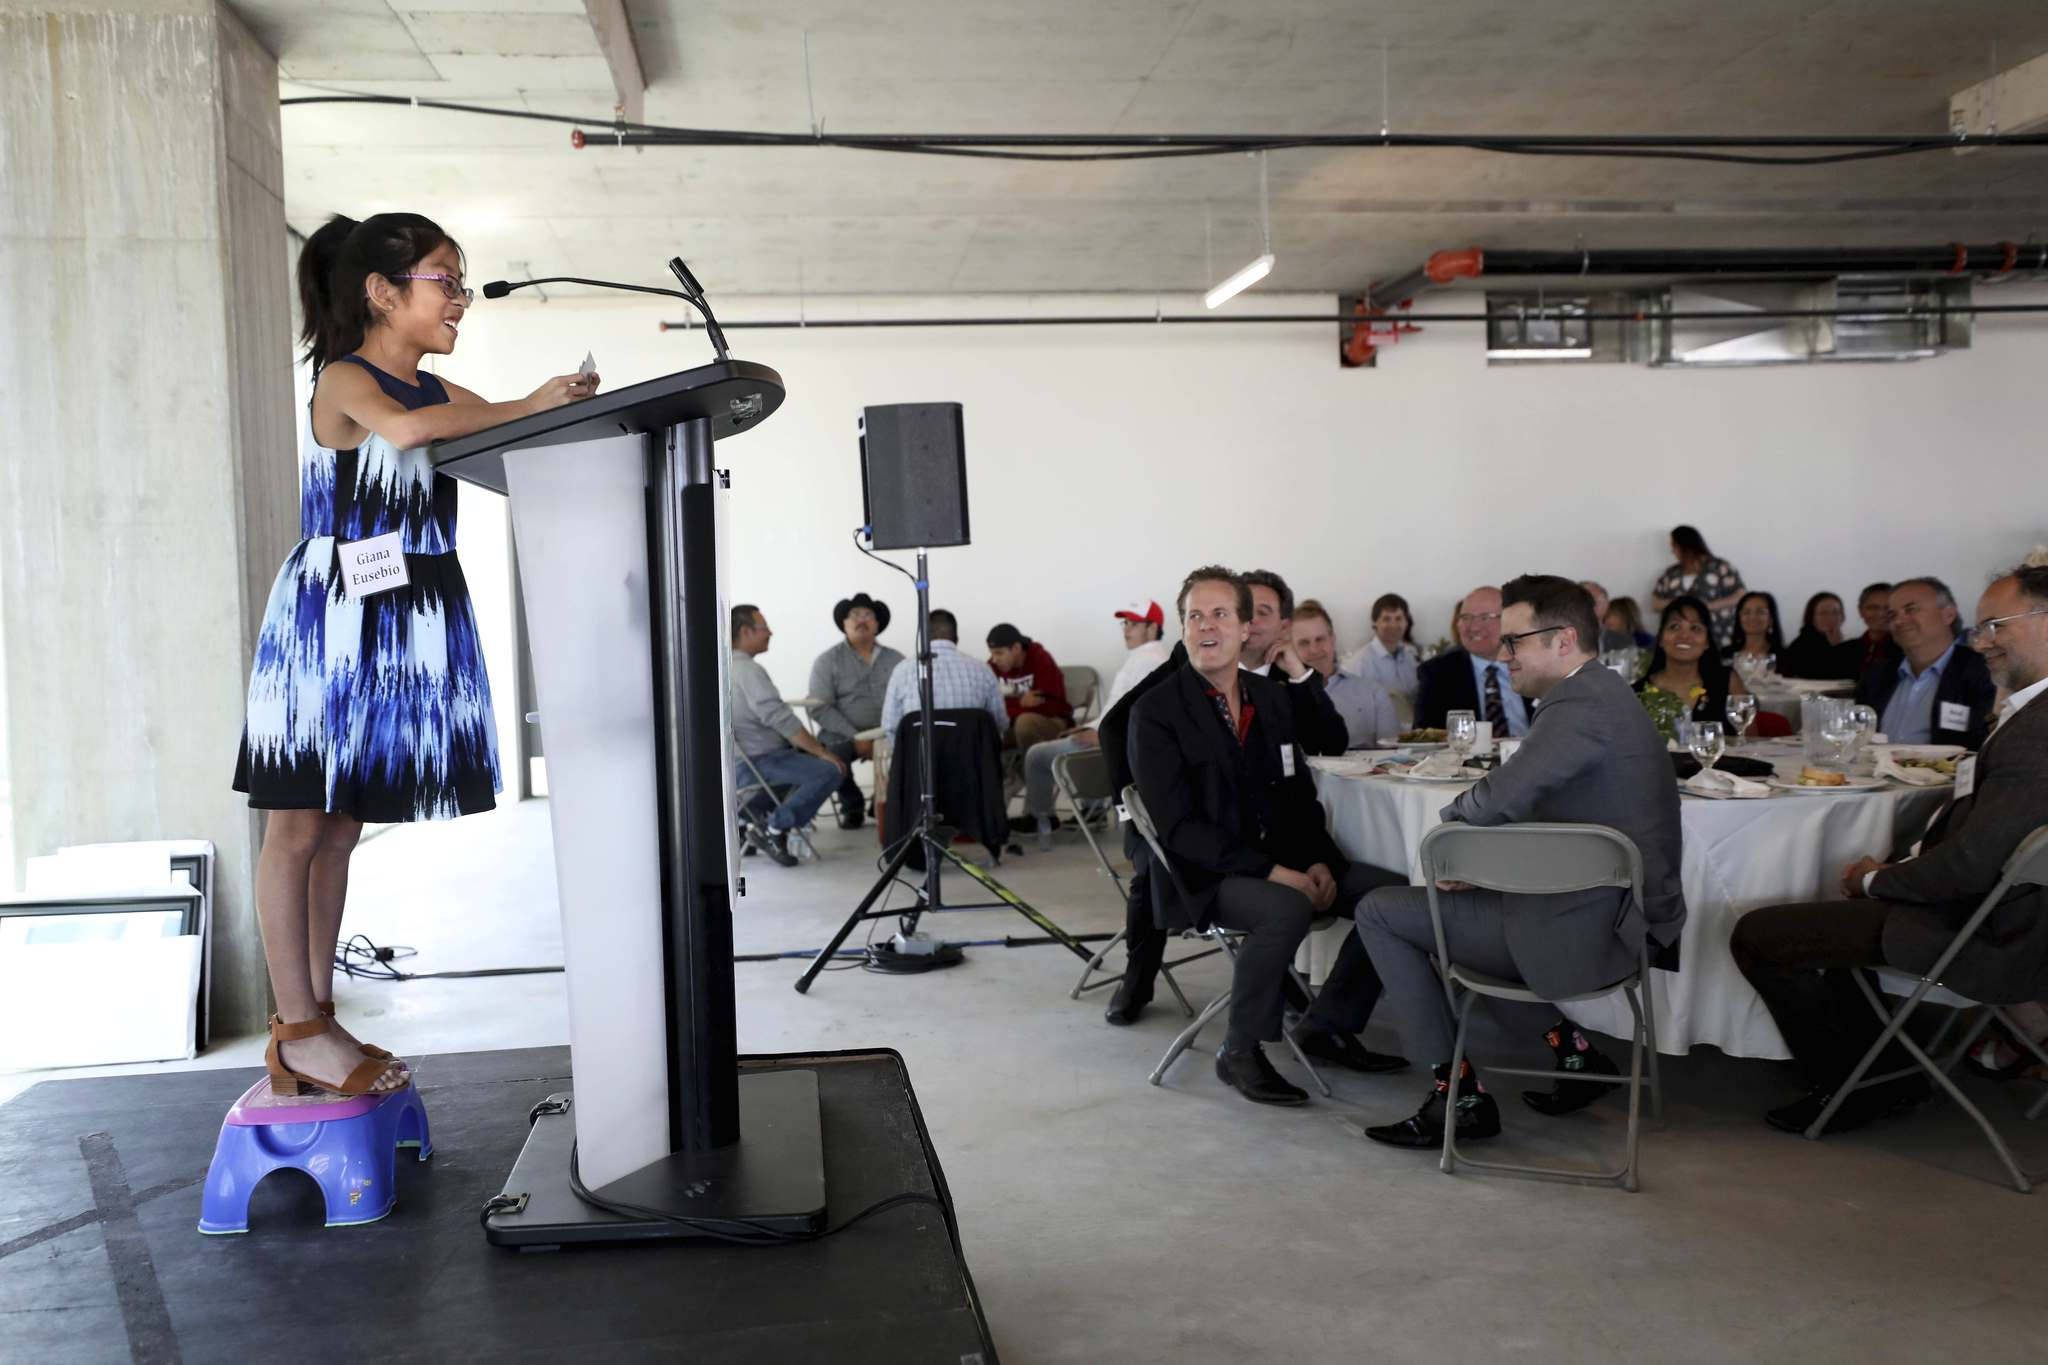 RUTH BONNEVILLE / WINNIPEG FREE PRESS LOCAL</p><p>The Children's Hospital, 2019 Champion Child – Gianna Eusebio (10 years), born pre-mature with heart problems, speaks at the Children's Hospital Foundation of Manitoba luncheon and annual general meeting held on the 8th floor of True North Square Tuesday.</p>